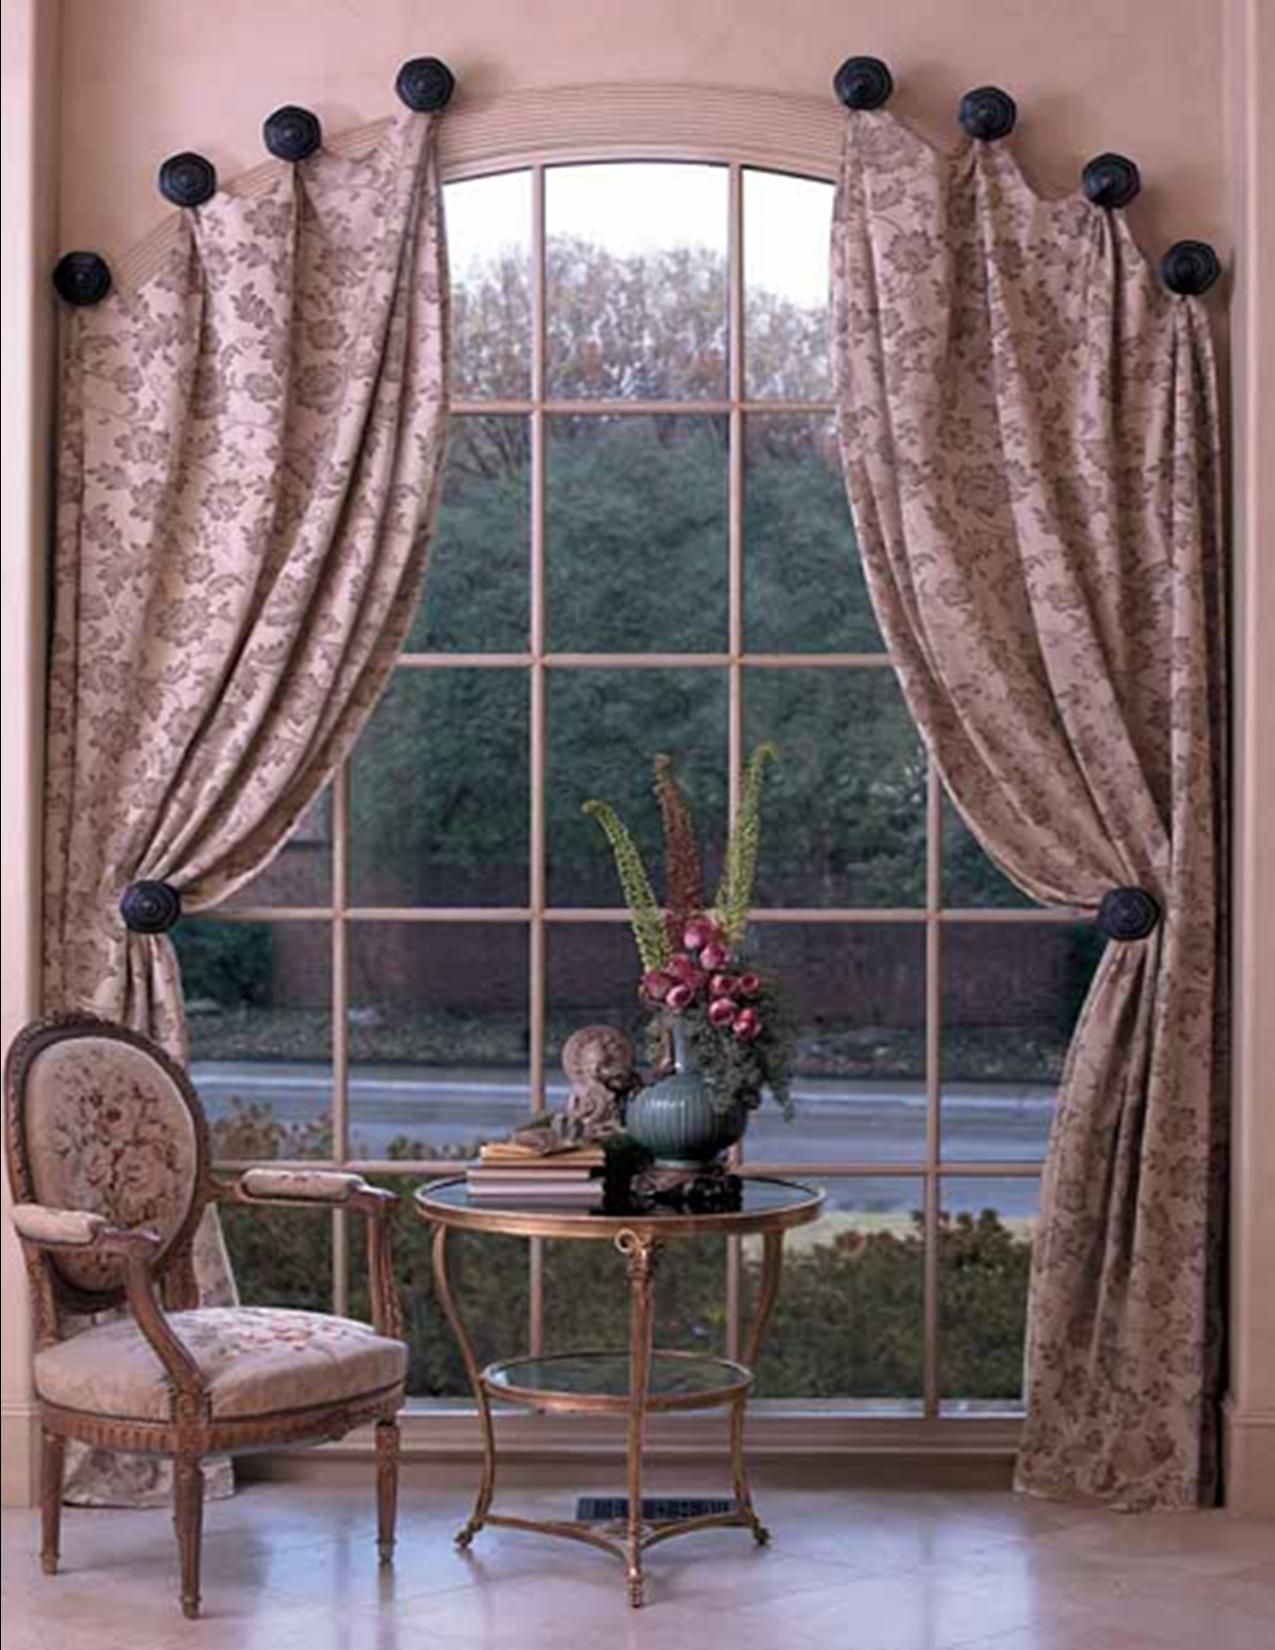 Custom window treatments for arched windows - Find This Pin And More On Window Covering Ideas